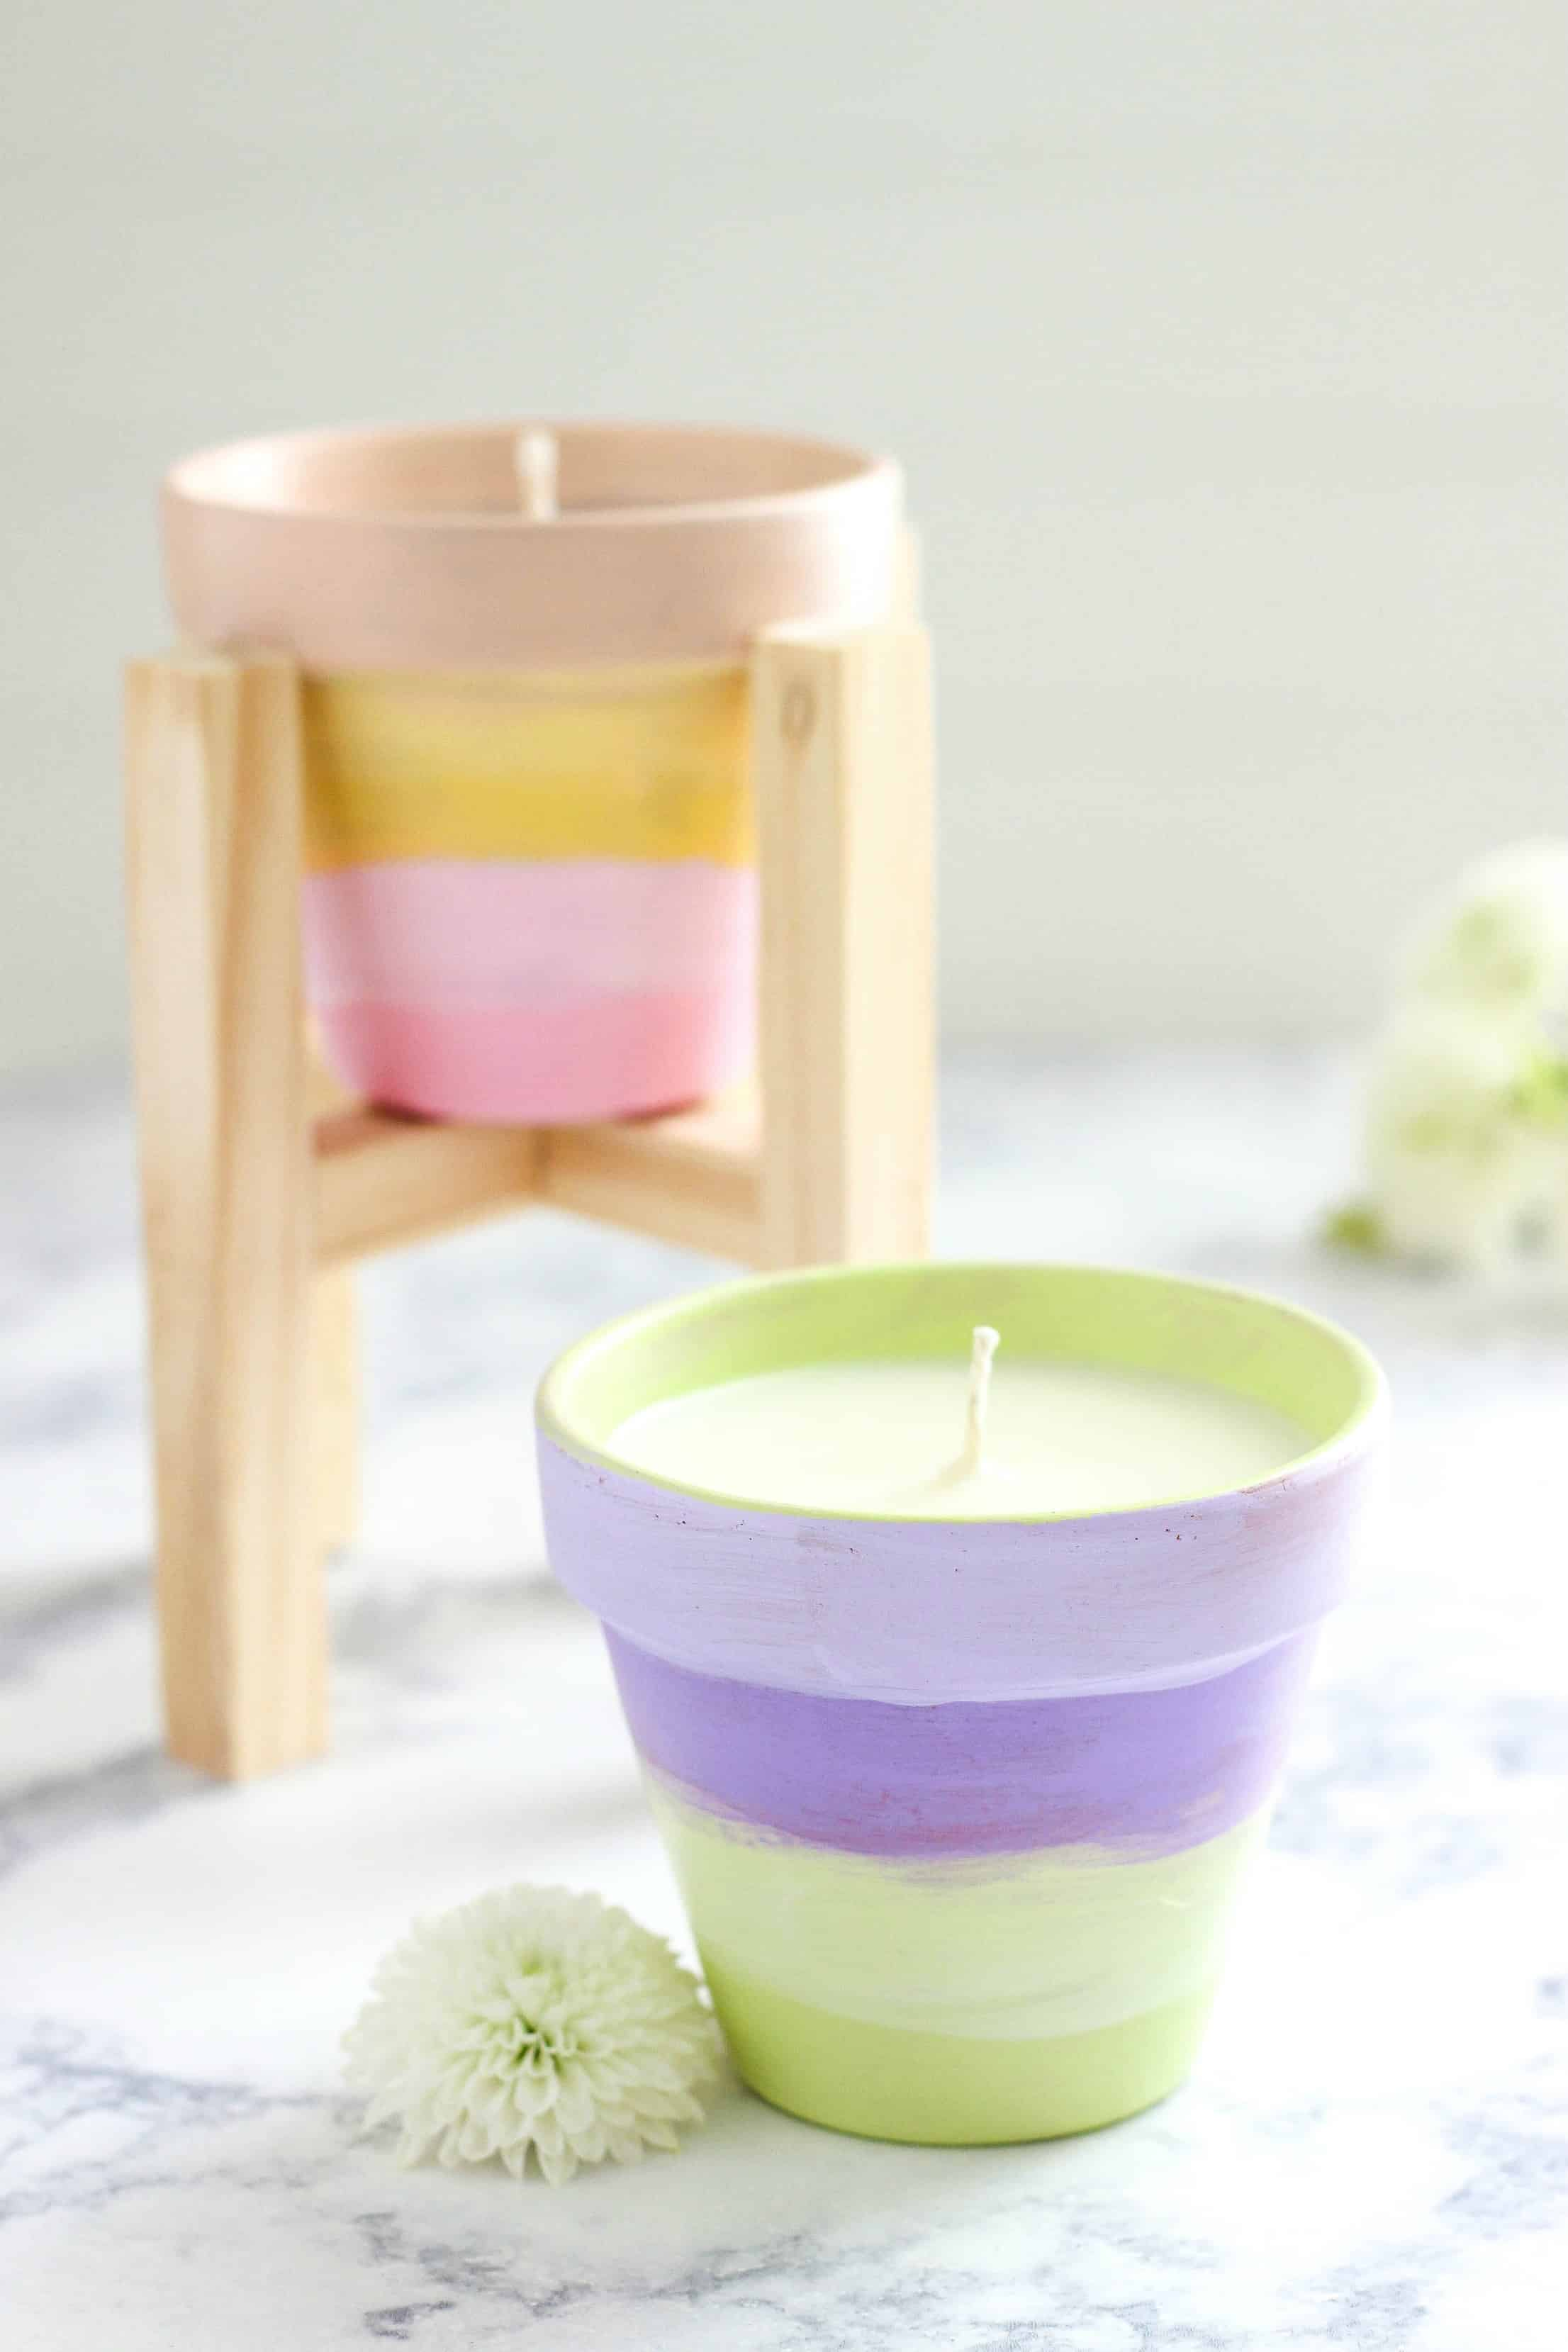 Diy terracotta citronella candle